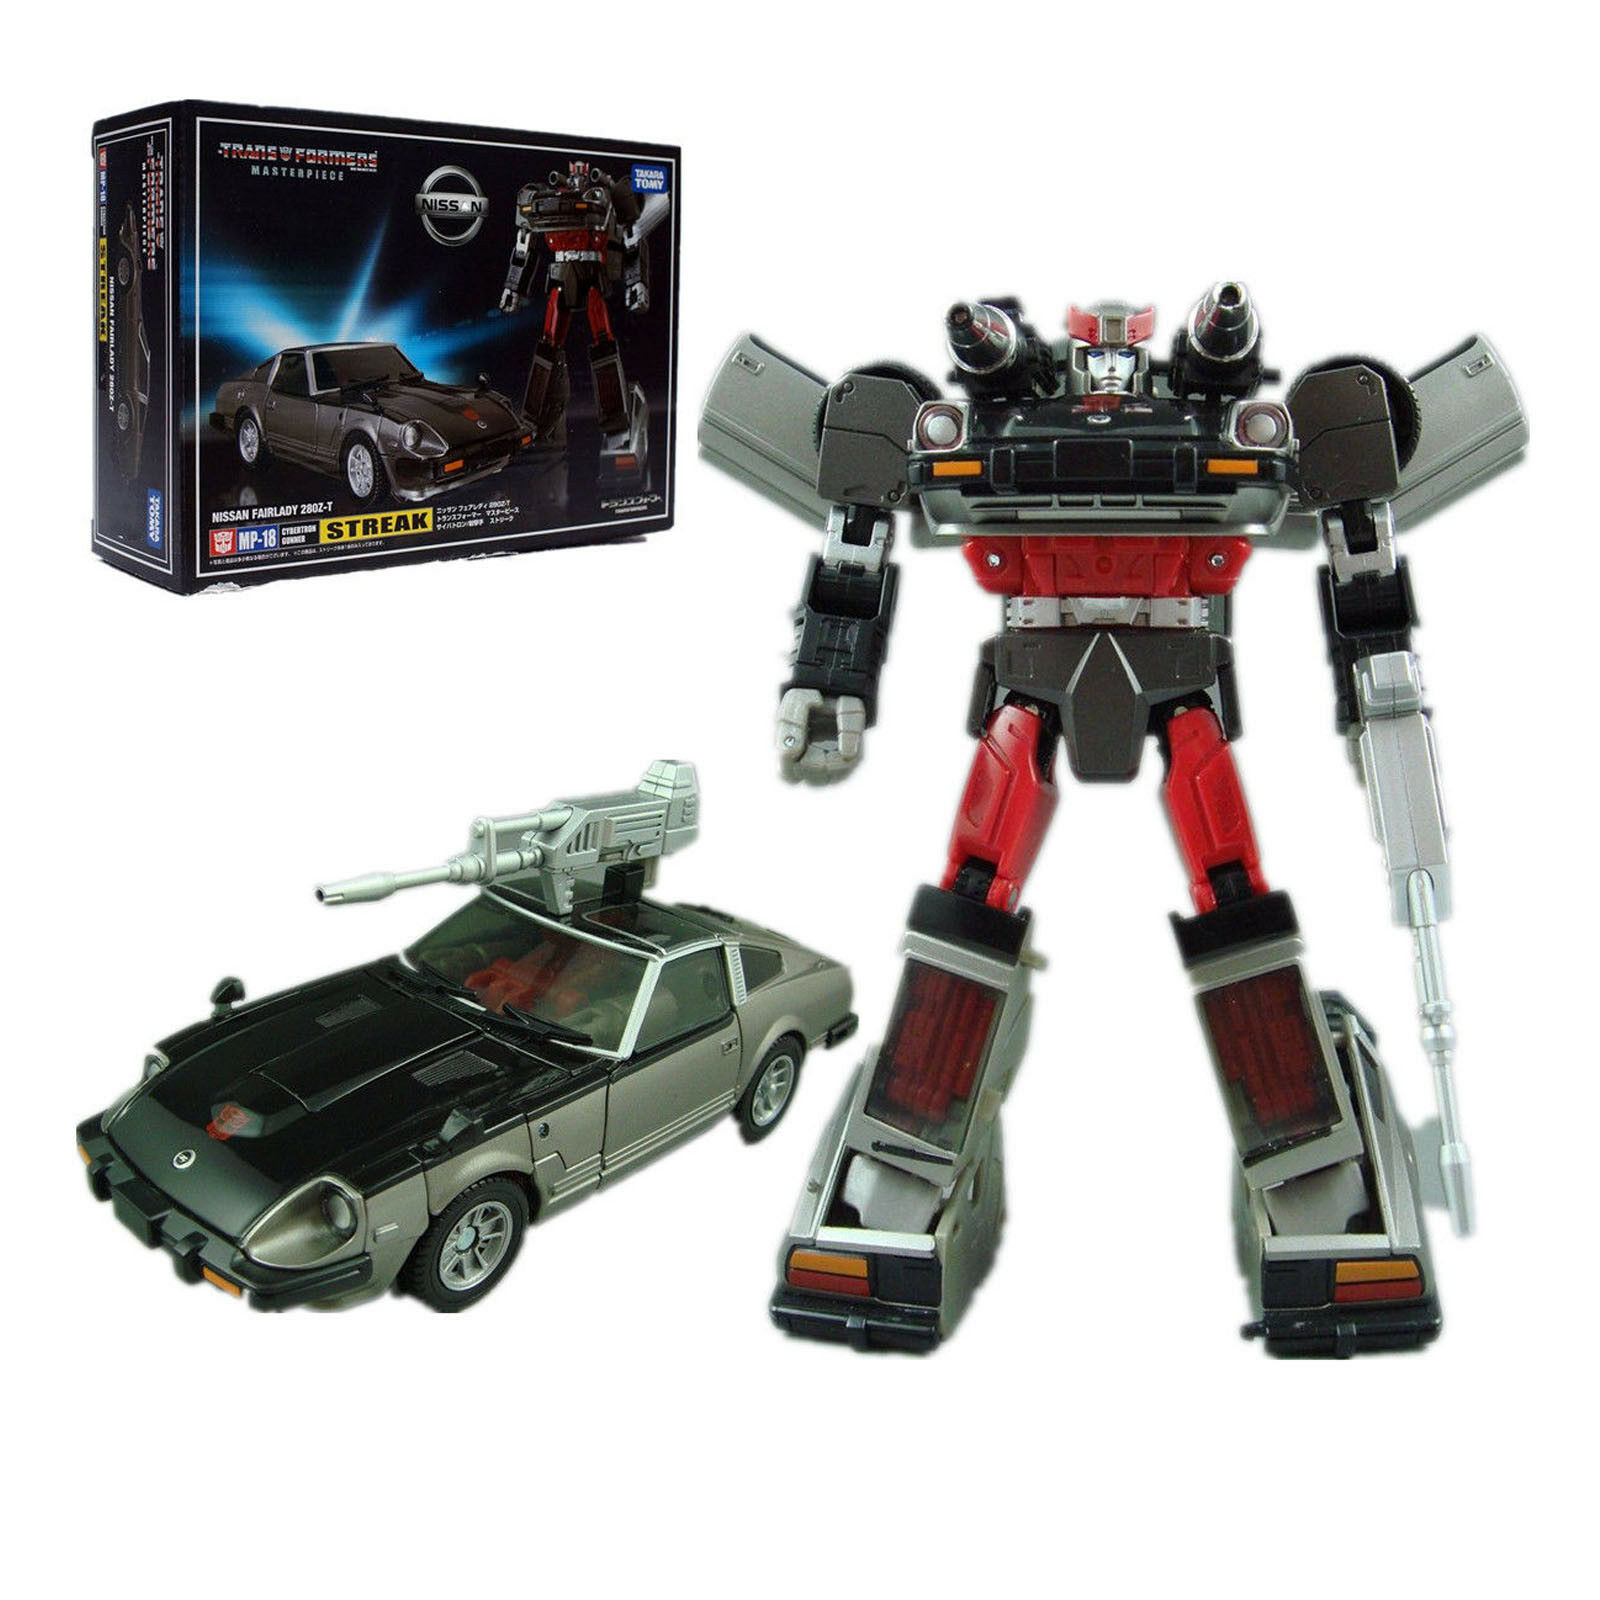 Transformers Masterpiece MP-18 MP18 STREAK Autobots Kids Gift Toys Cars X-mas